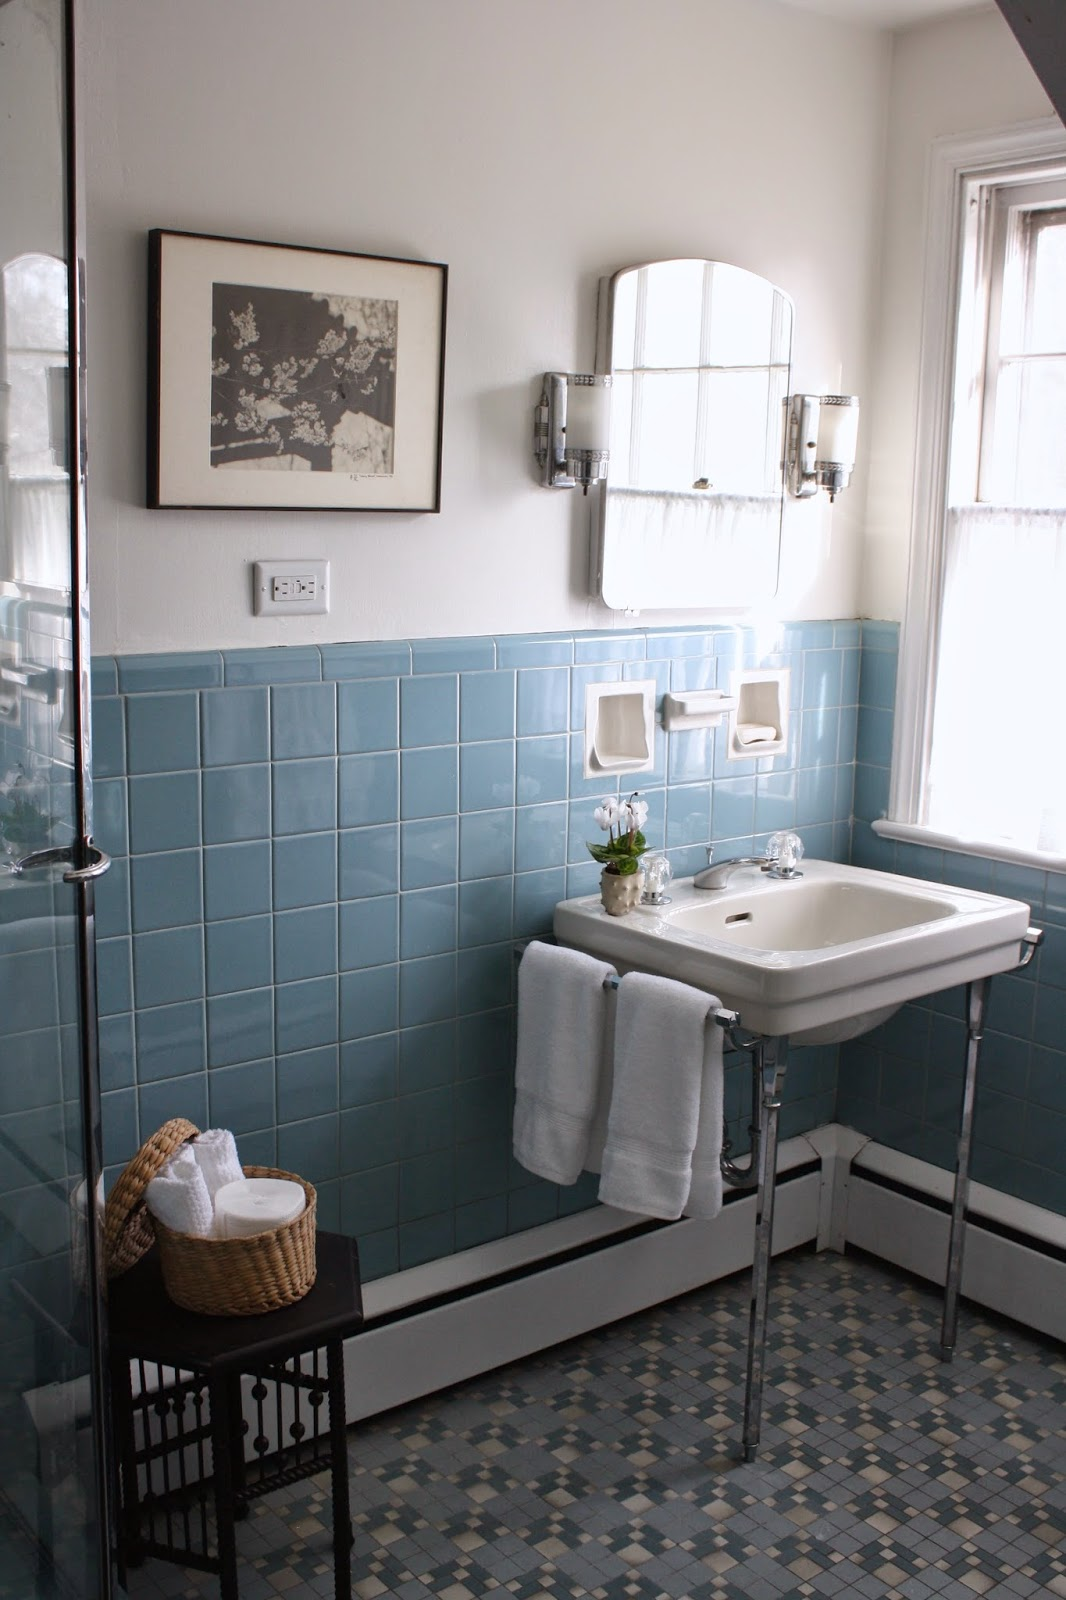 36 nice ideas and pictures of vintage bathroom tile design for Vintage bathroom photos